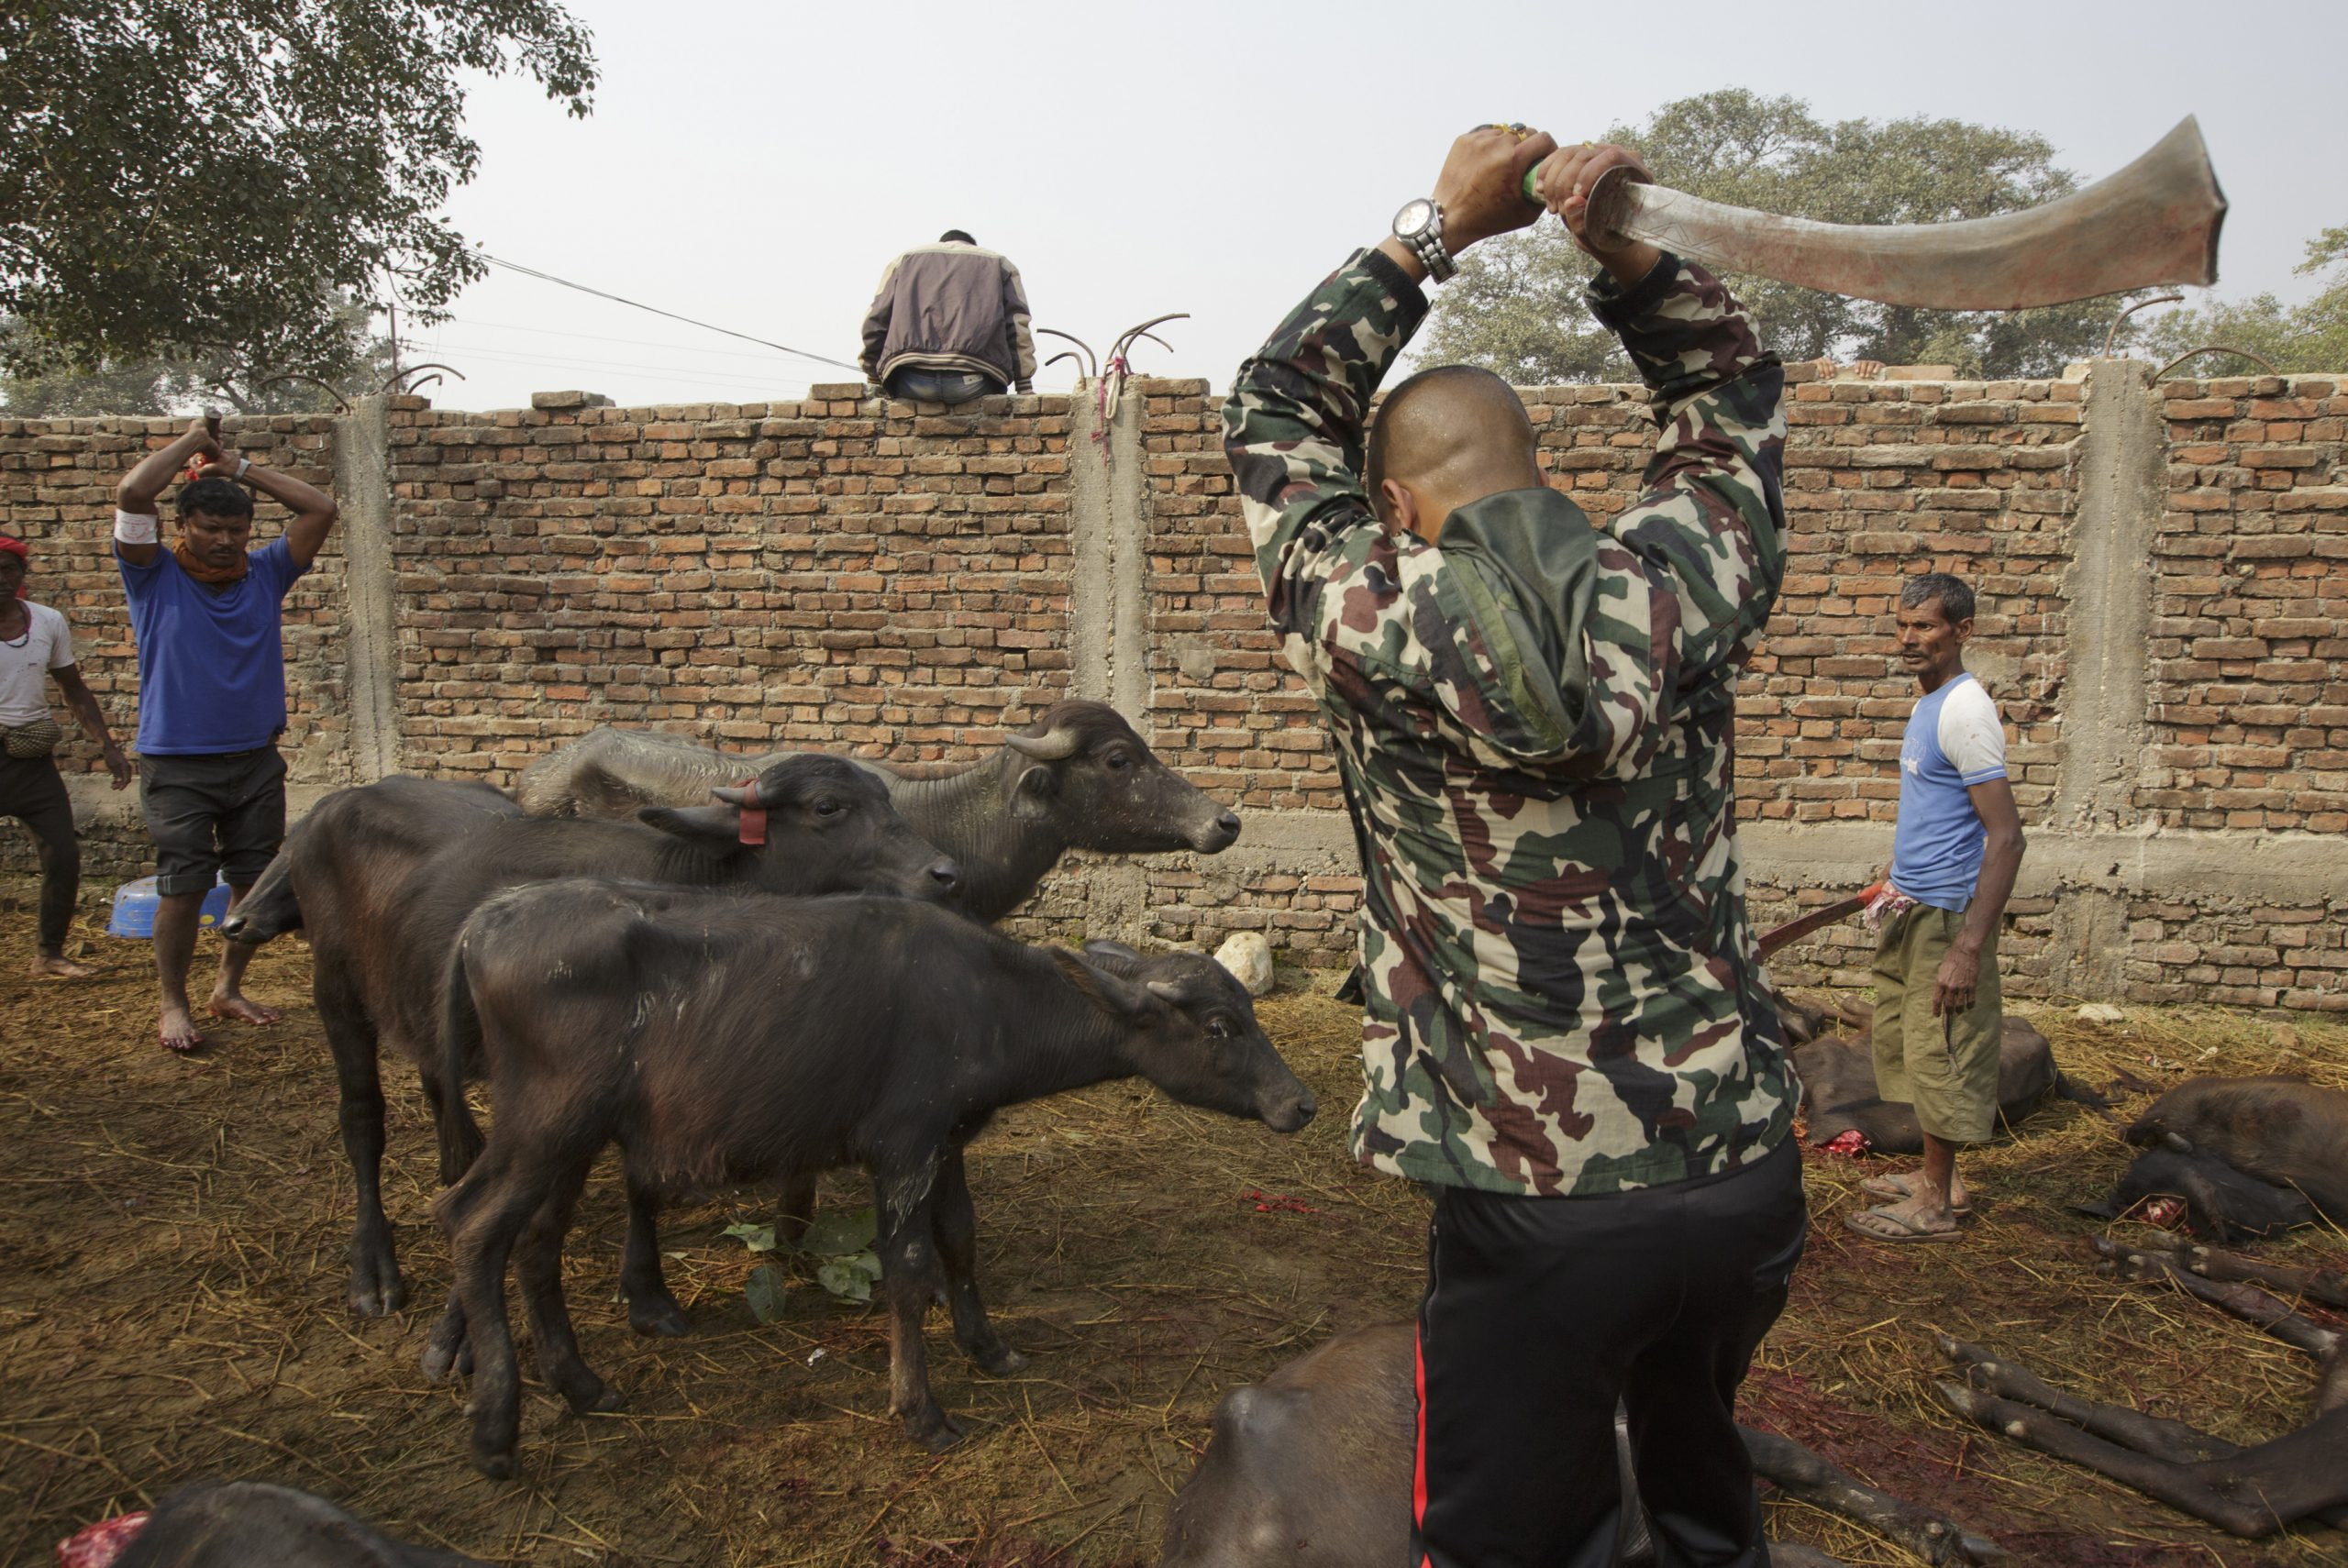 Animal about to be slaughtered at the Gadhimai Festival